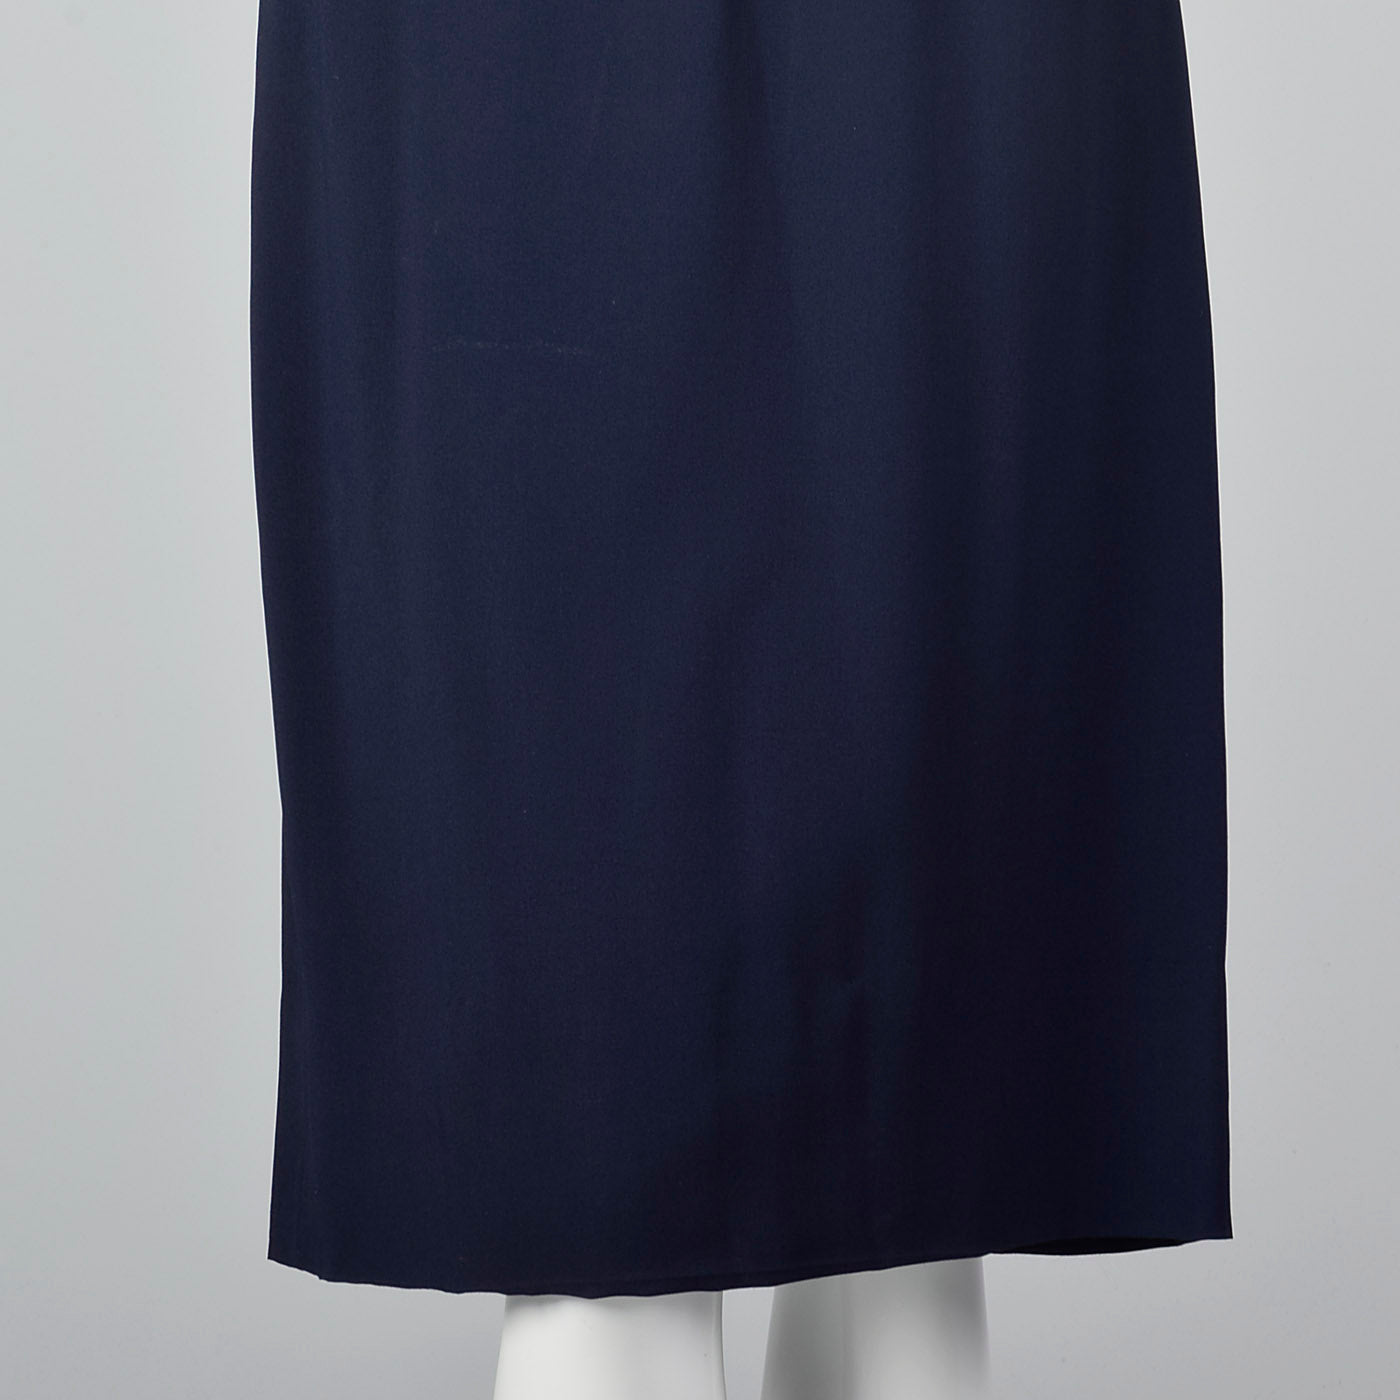 1950s Navy Blue Dress with Large Collar and Cuffs